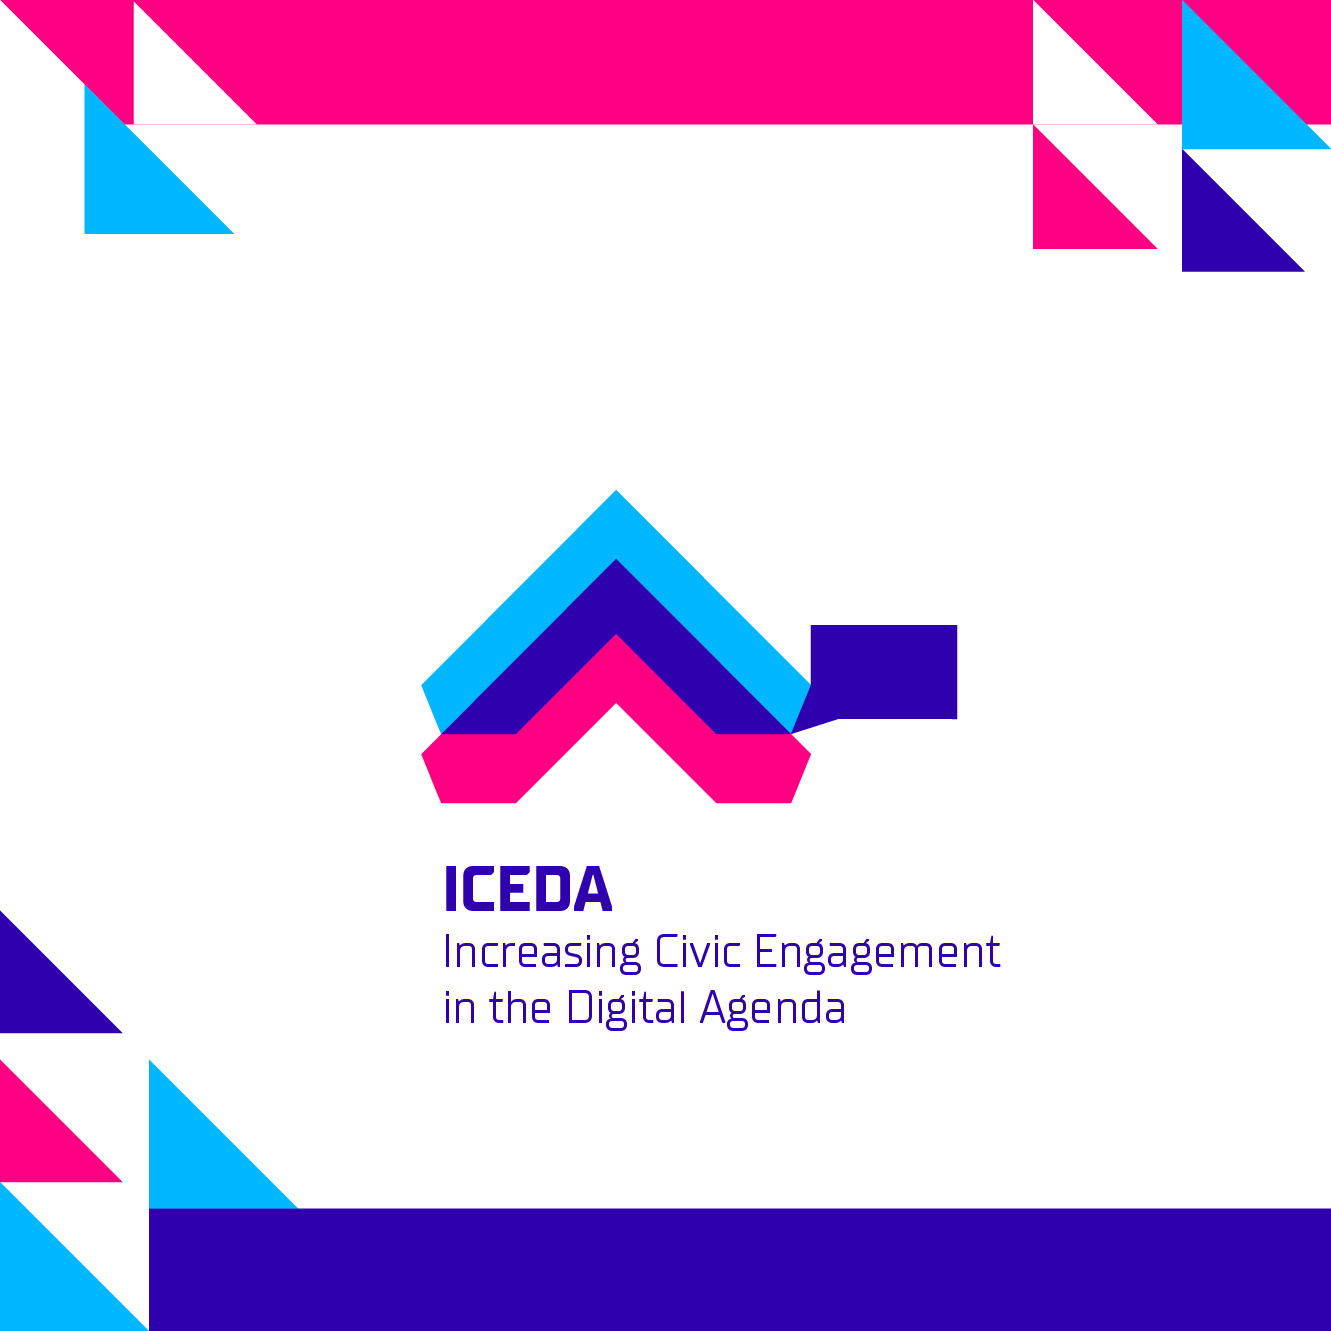 Increasing Civic Engagement in the Digital Agenda – ICEDA